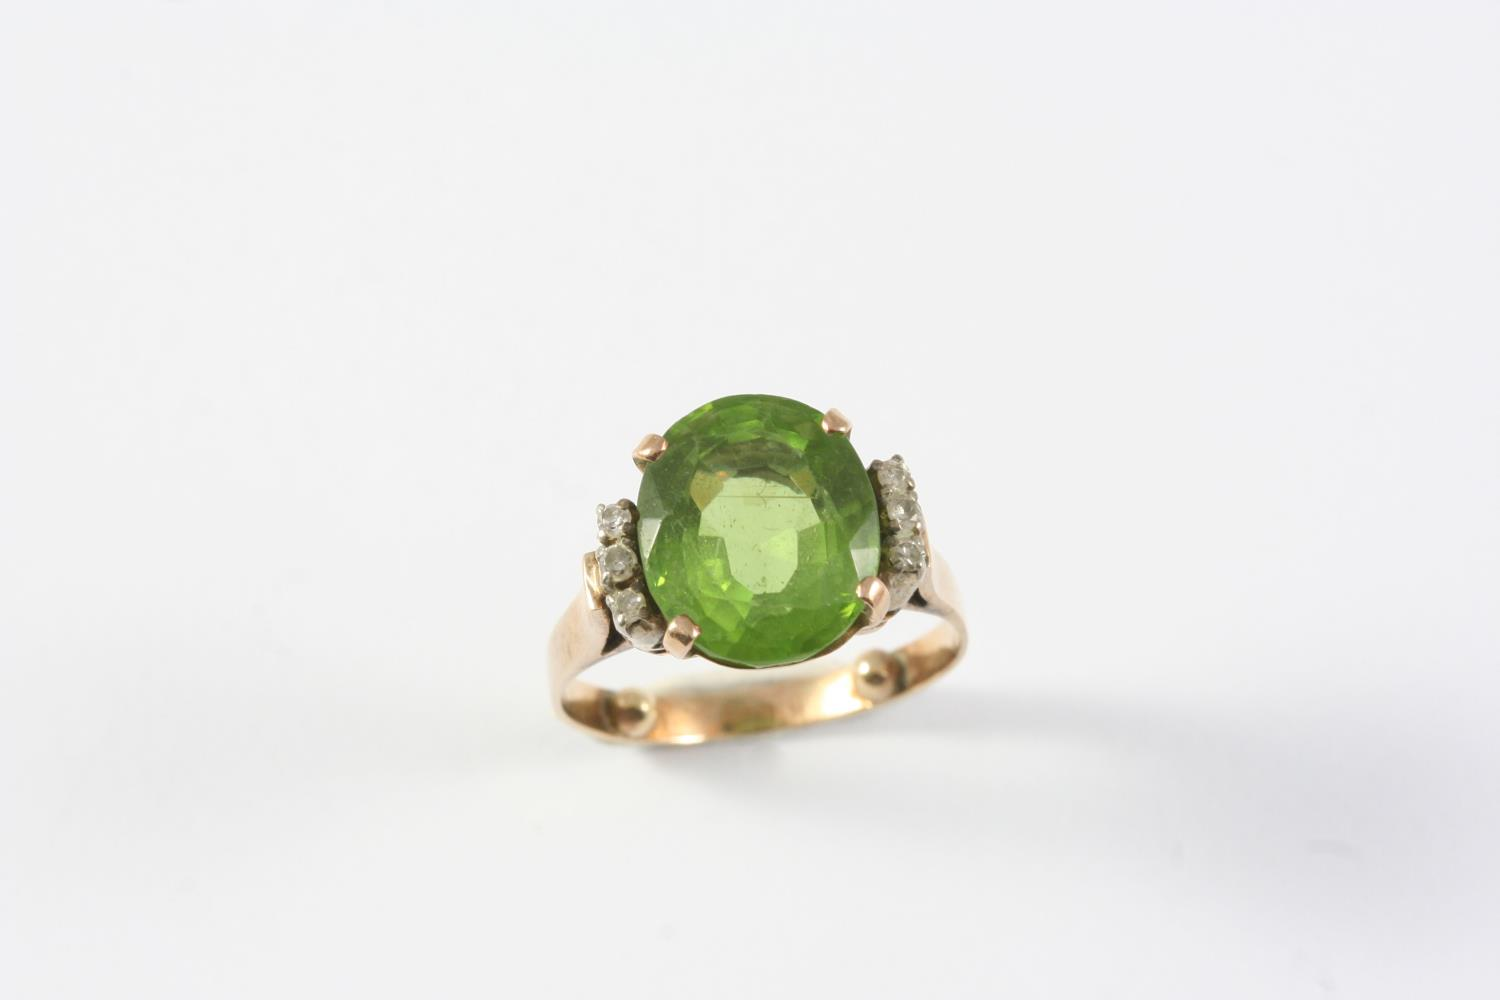 A PERIDOT AND DIAMOND RING the oval-shaped peridot is set with three circular-cut diamonds to each